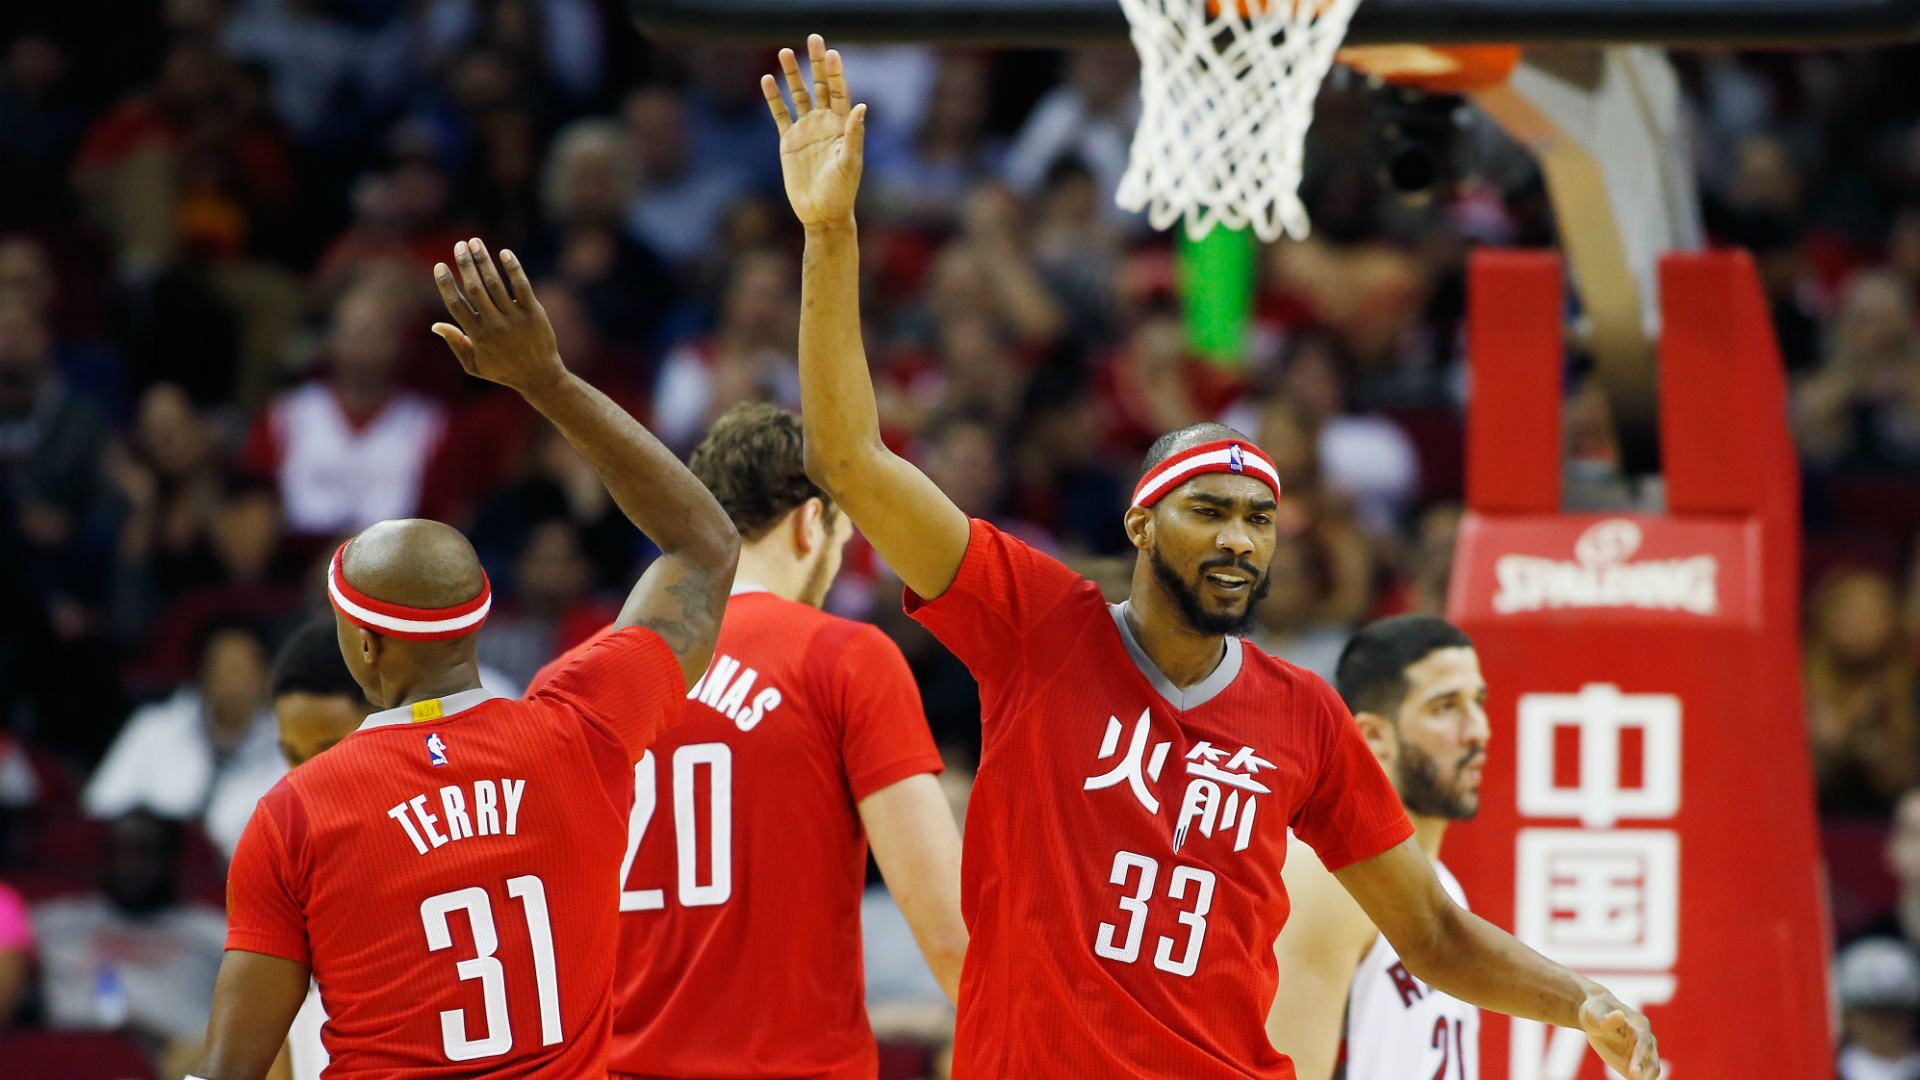 Rockets have more depth than many (Mark Cuban) want to admit